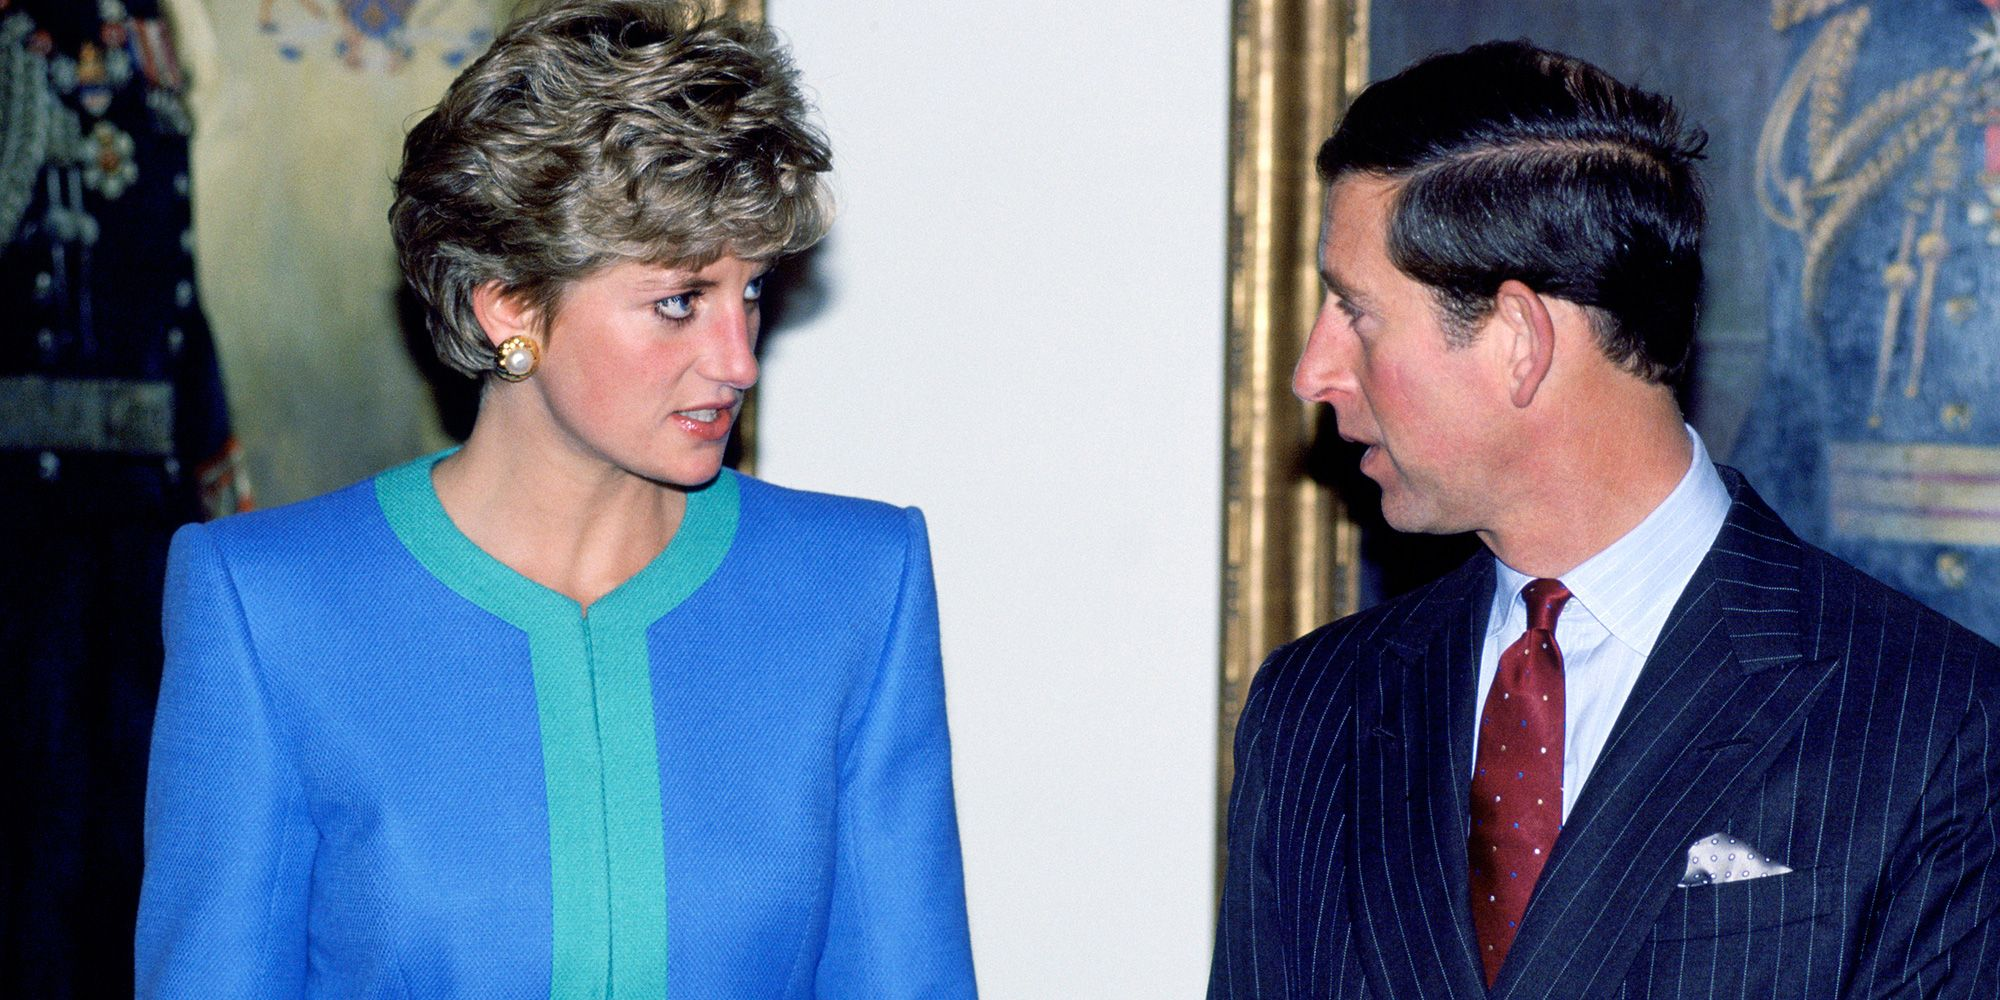 9 awkward mishaps that have happened on royal tours